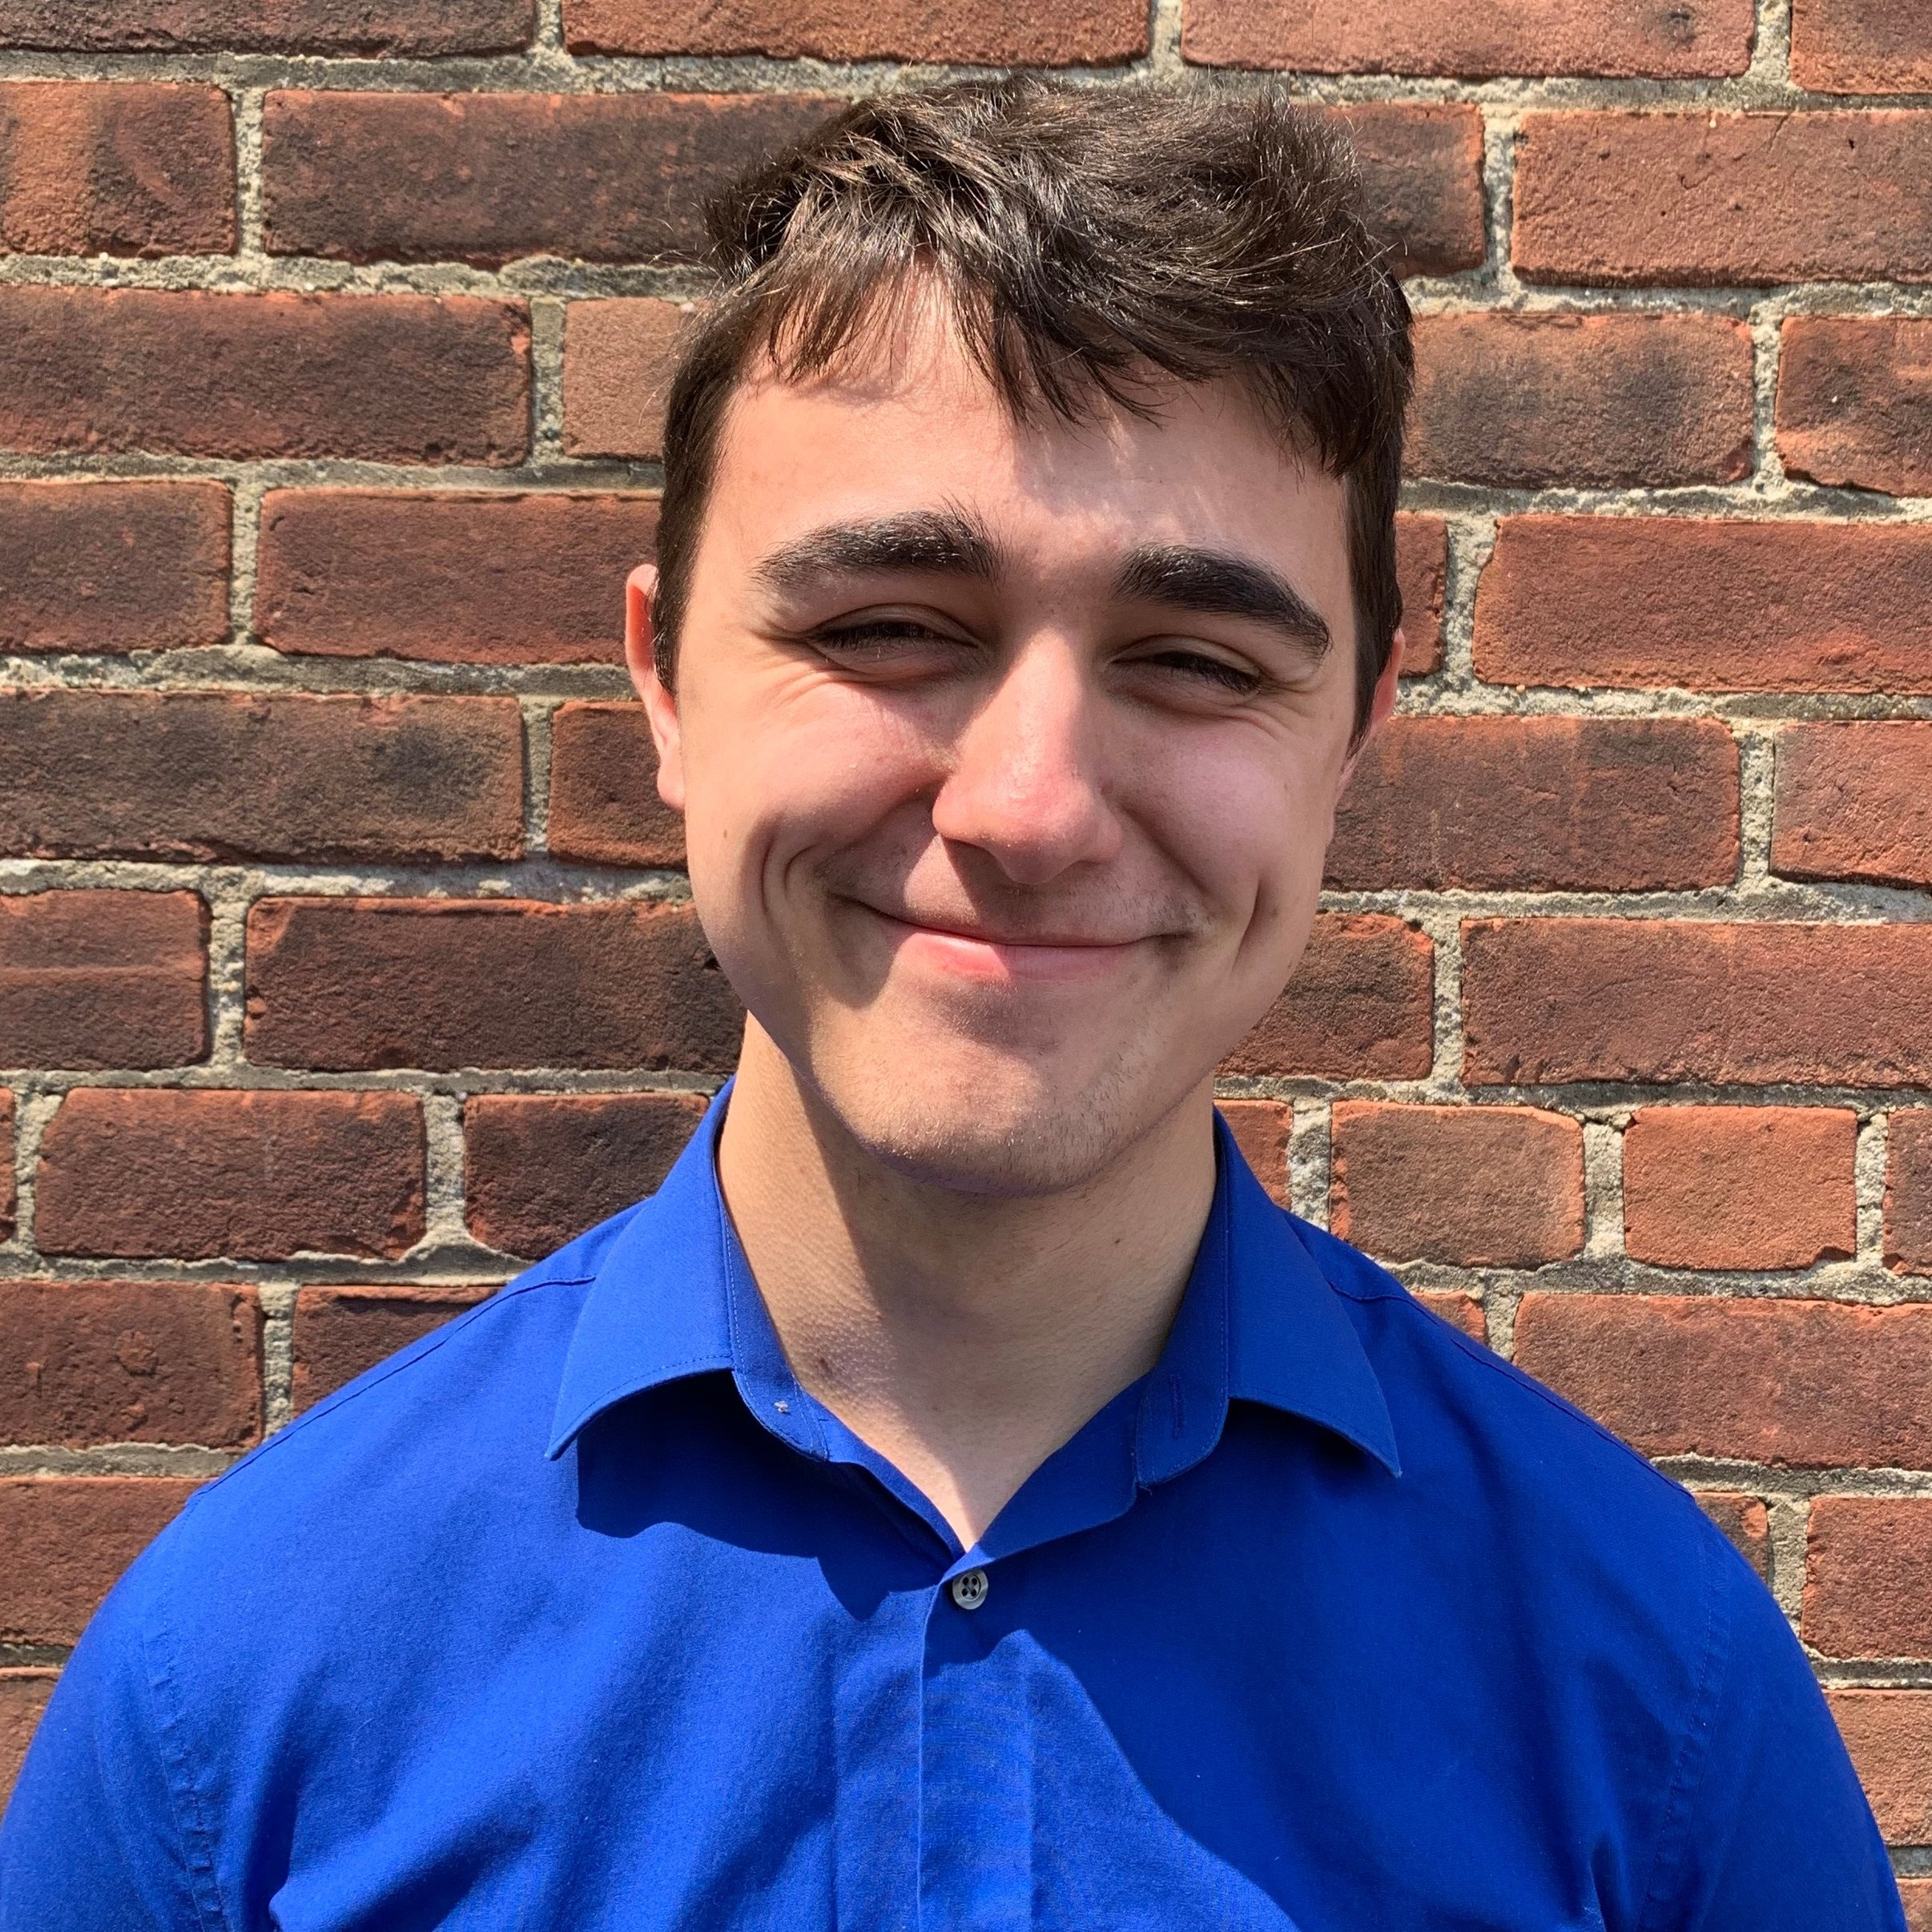 Adam Richter, Architectural Intern  Adam is a Vermont native with experience working in a variety of architectural firms since his days in high school with a main focus on retail and residential. His studies throughout school have been the contextualization of projects and how they affect the landscapes around them through their various architectural forms and elements. Adam holds a Bachelor of Science in Architecture from Wentworth Institute of Technology and plans to return for his Master of Architecture. Besides work, Adam enjoys traveling and exploring both natural and urban landscapes.